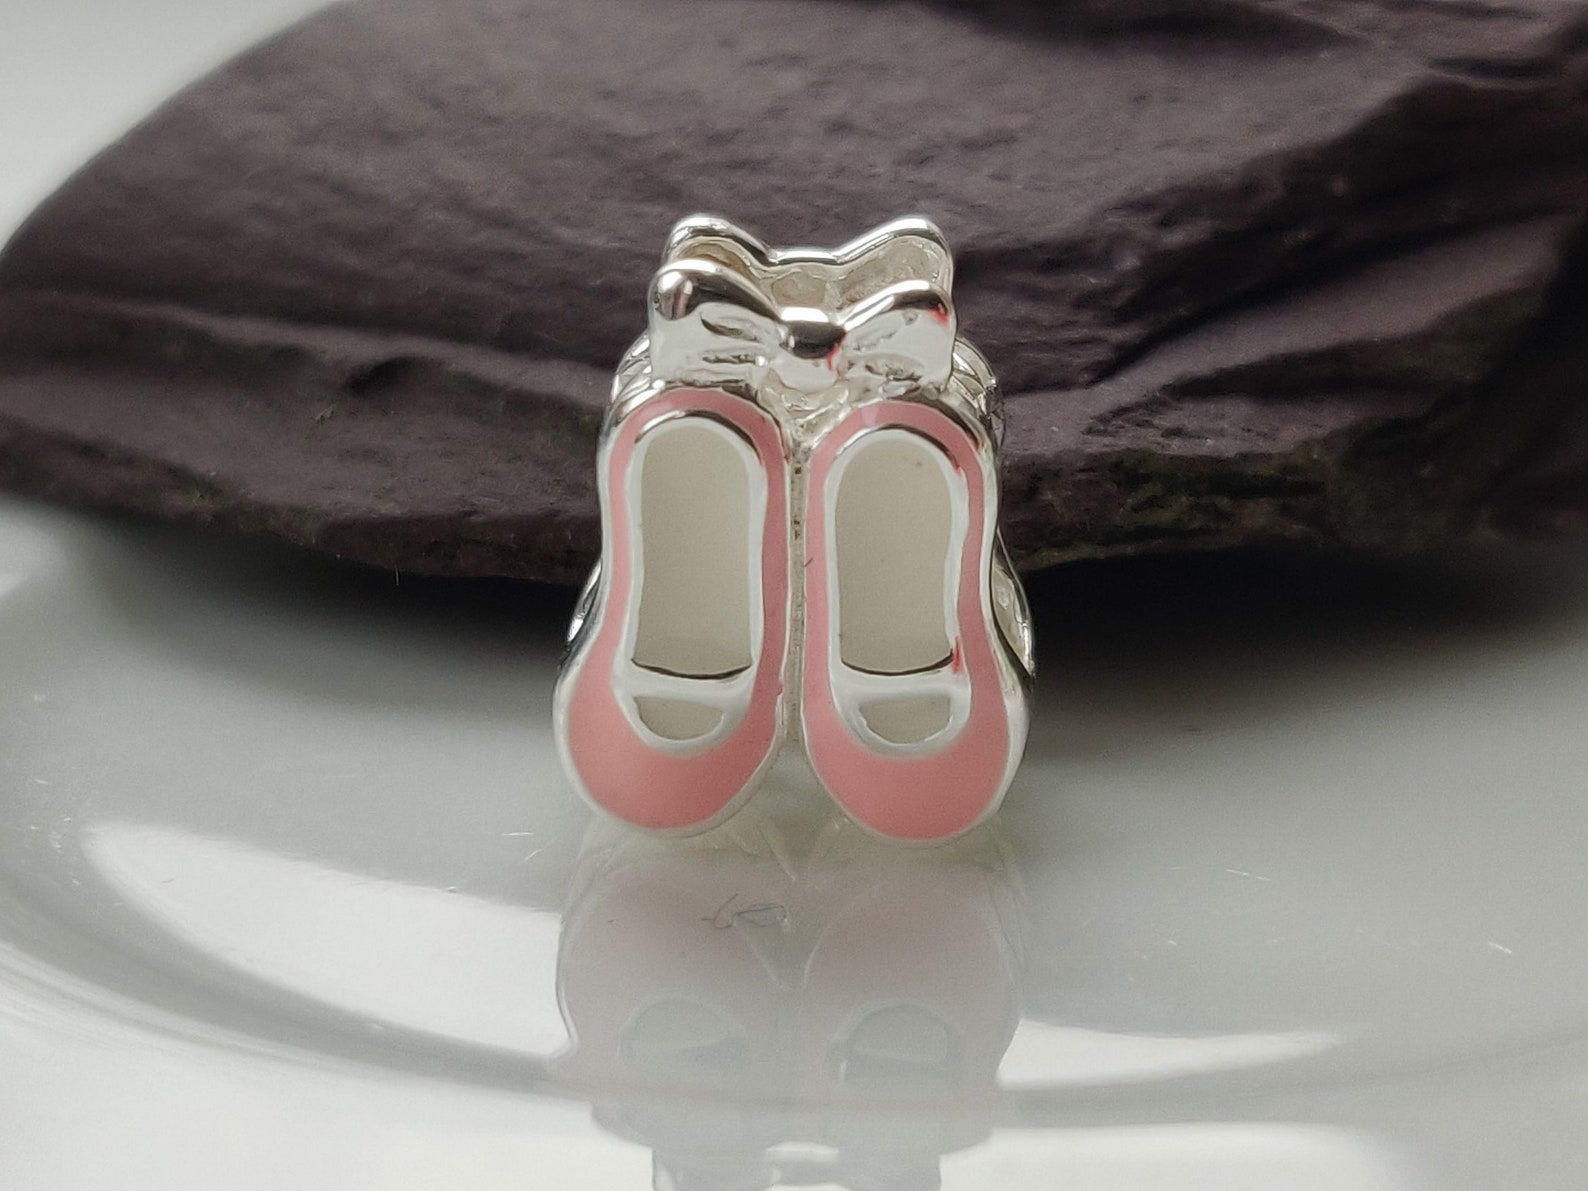 silver ballet shoes - dancing charm,ballet jewellery,silver shoe charm